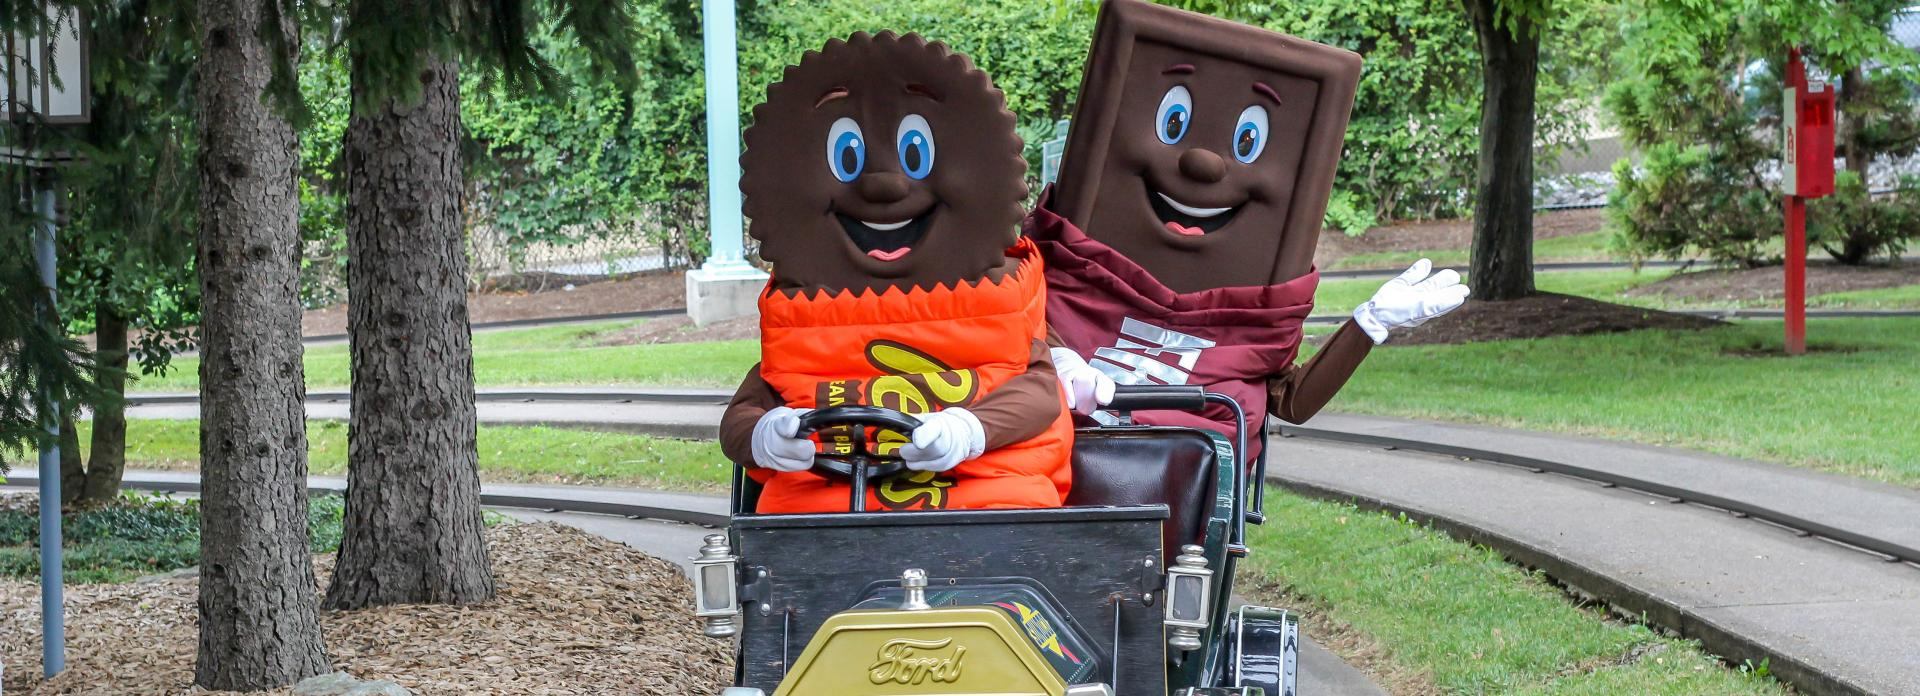 Hersheypark-antique-cars-reeses-hershey